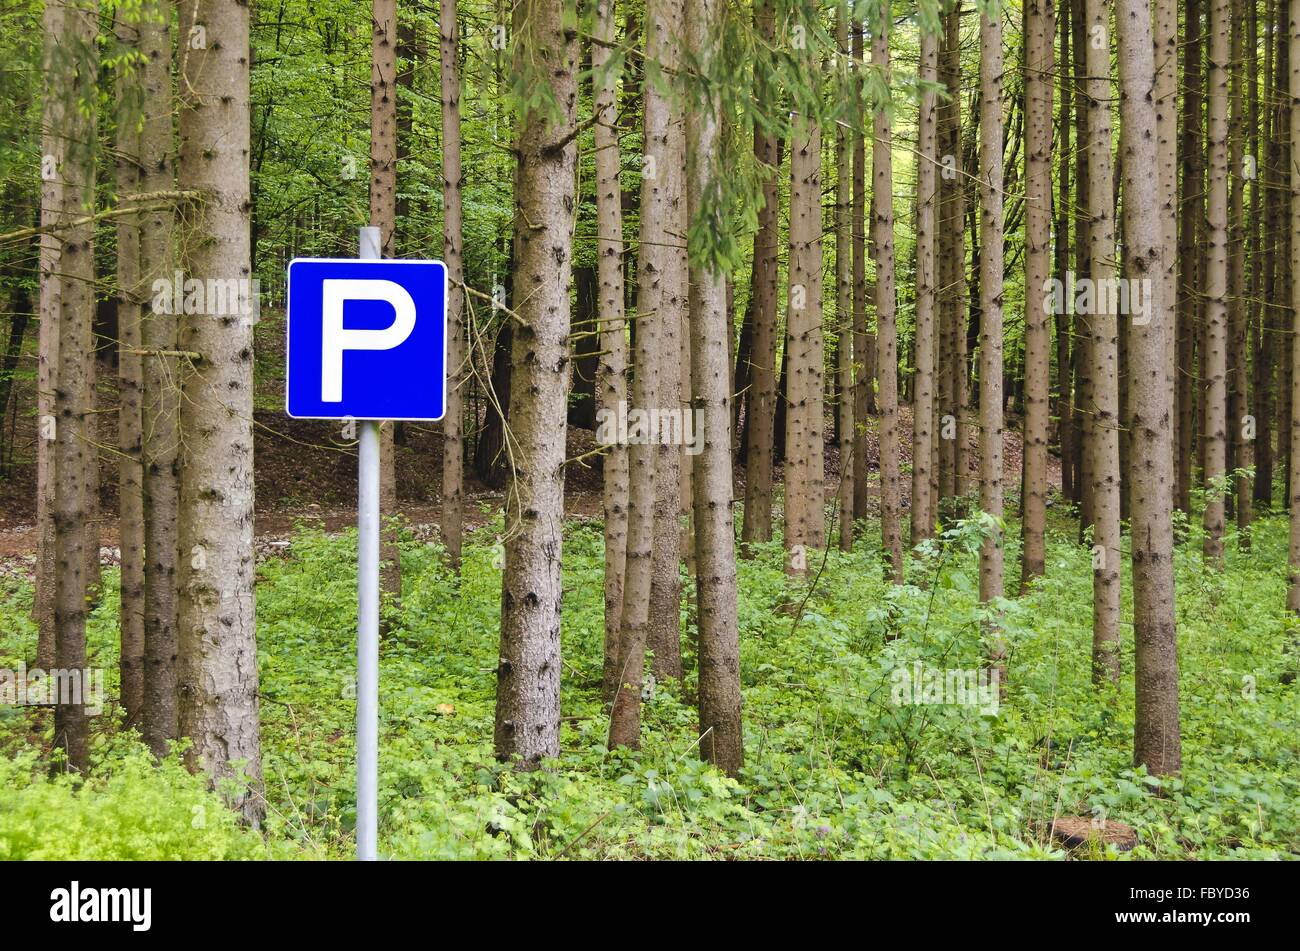 conifer forest with road sign - Stock Image